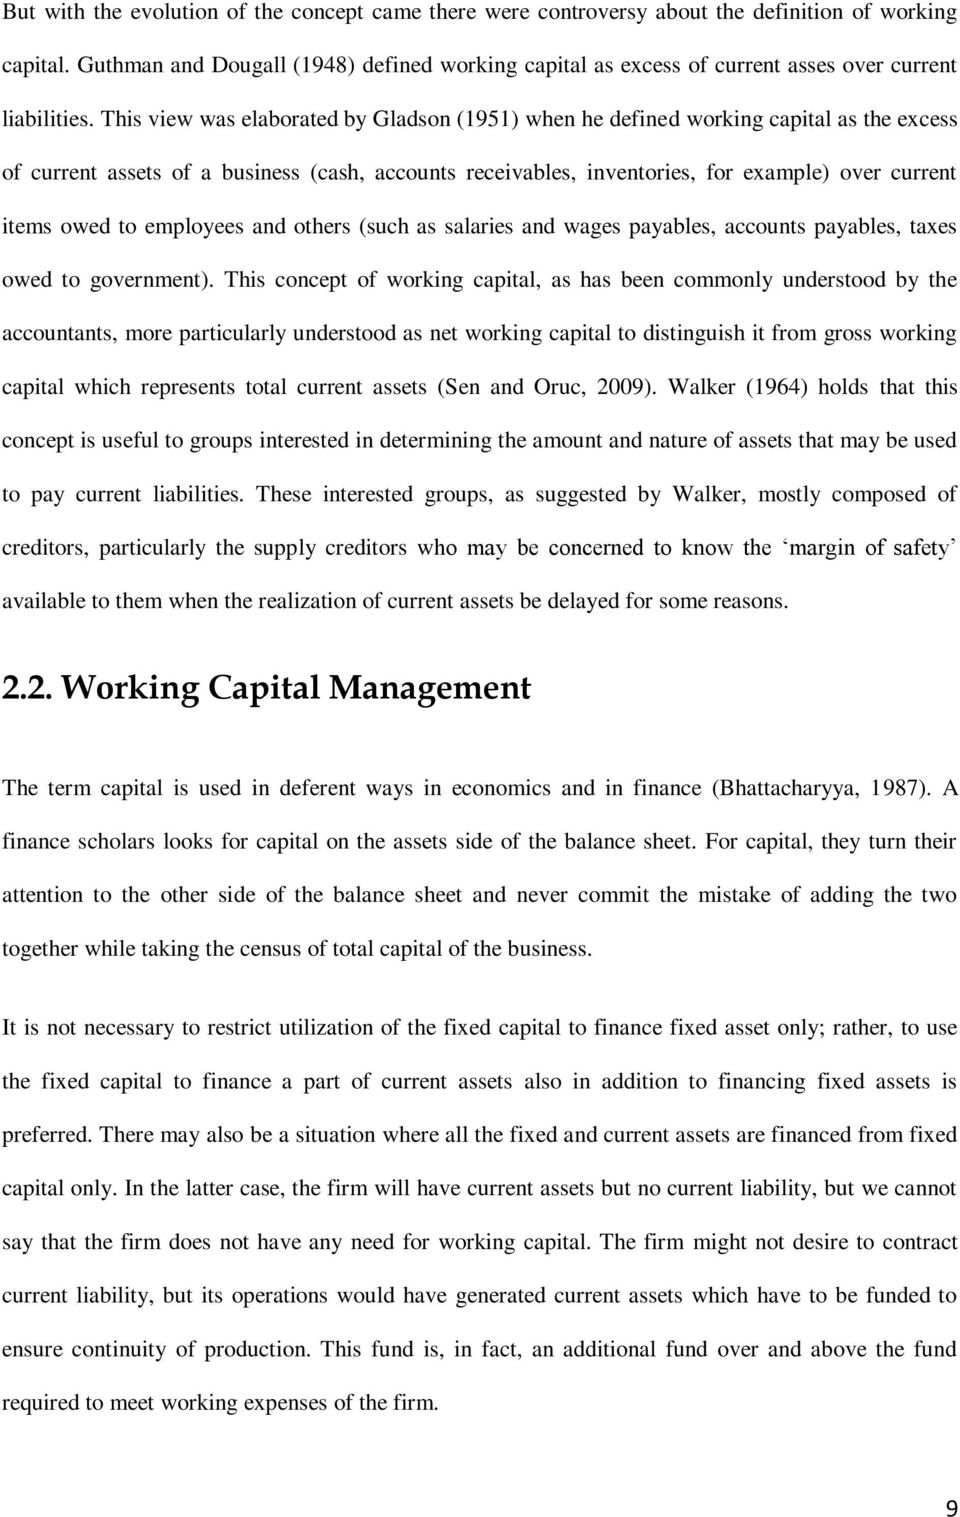 the effect of working capital policies management on firms